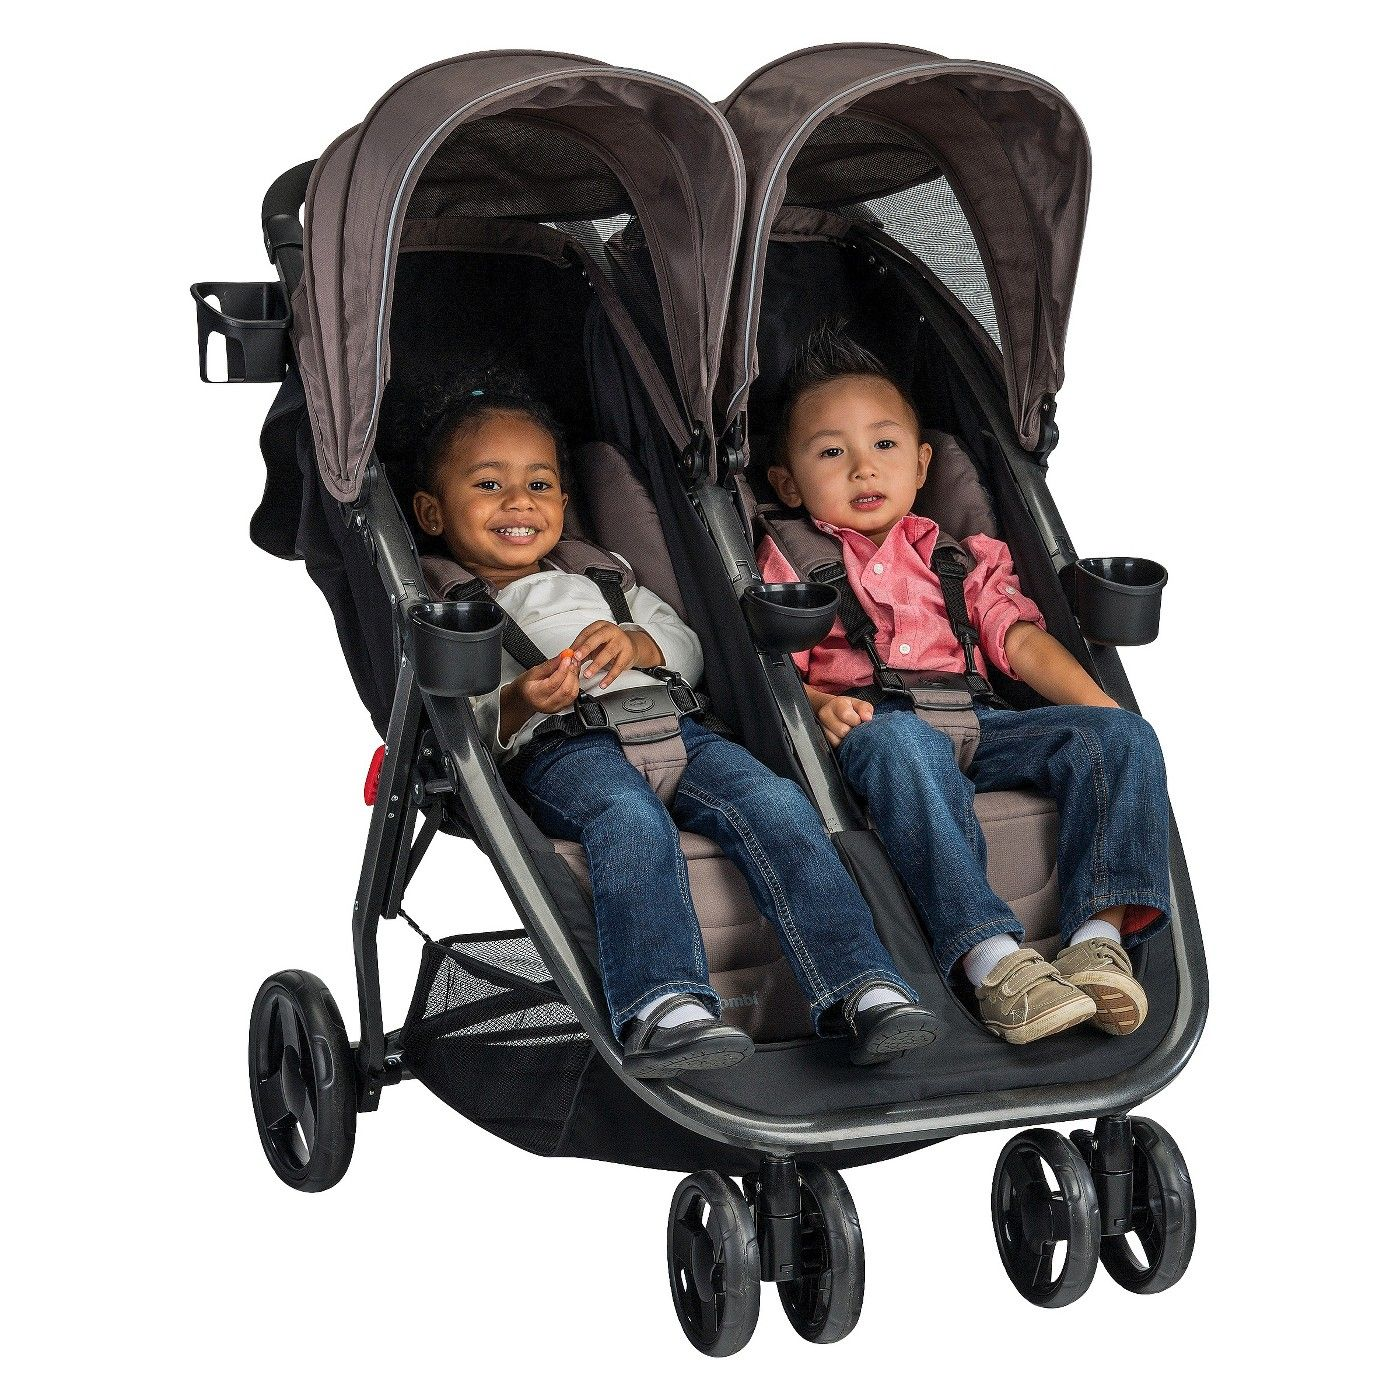 Combi fold n go double stroller image 4 of 4 with